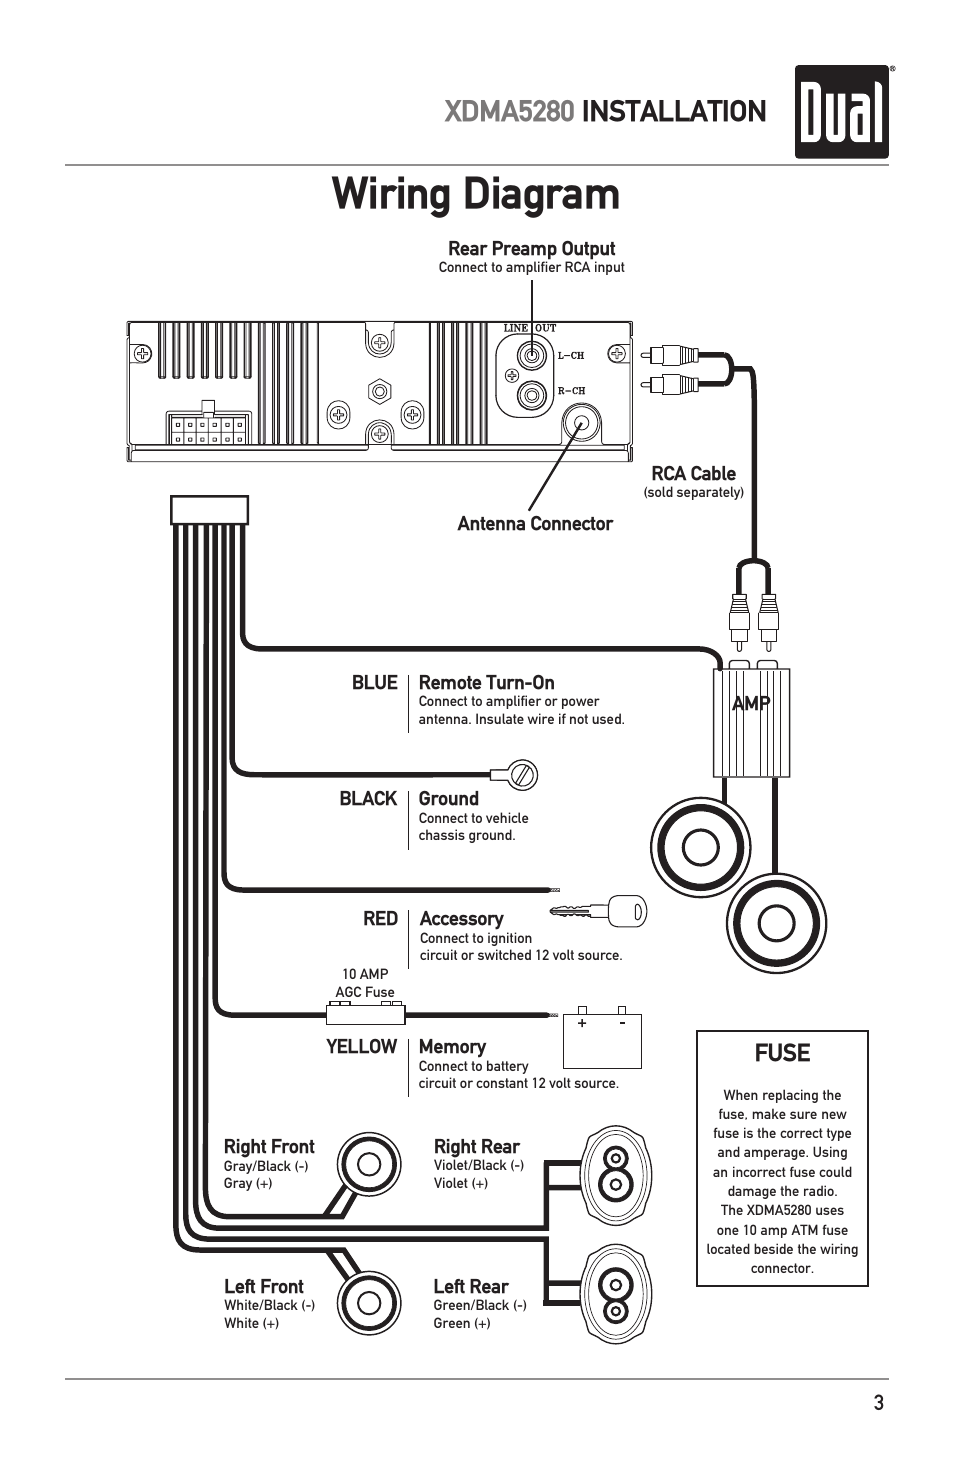 wiring diagram  xdma5280 installation  fuse